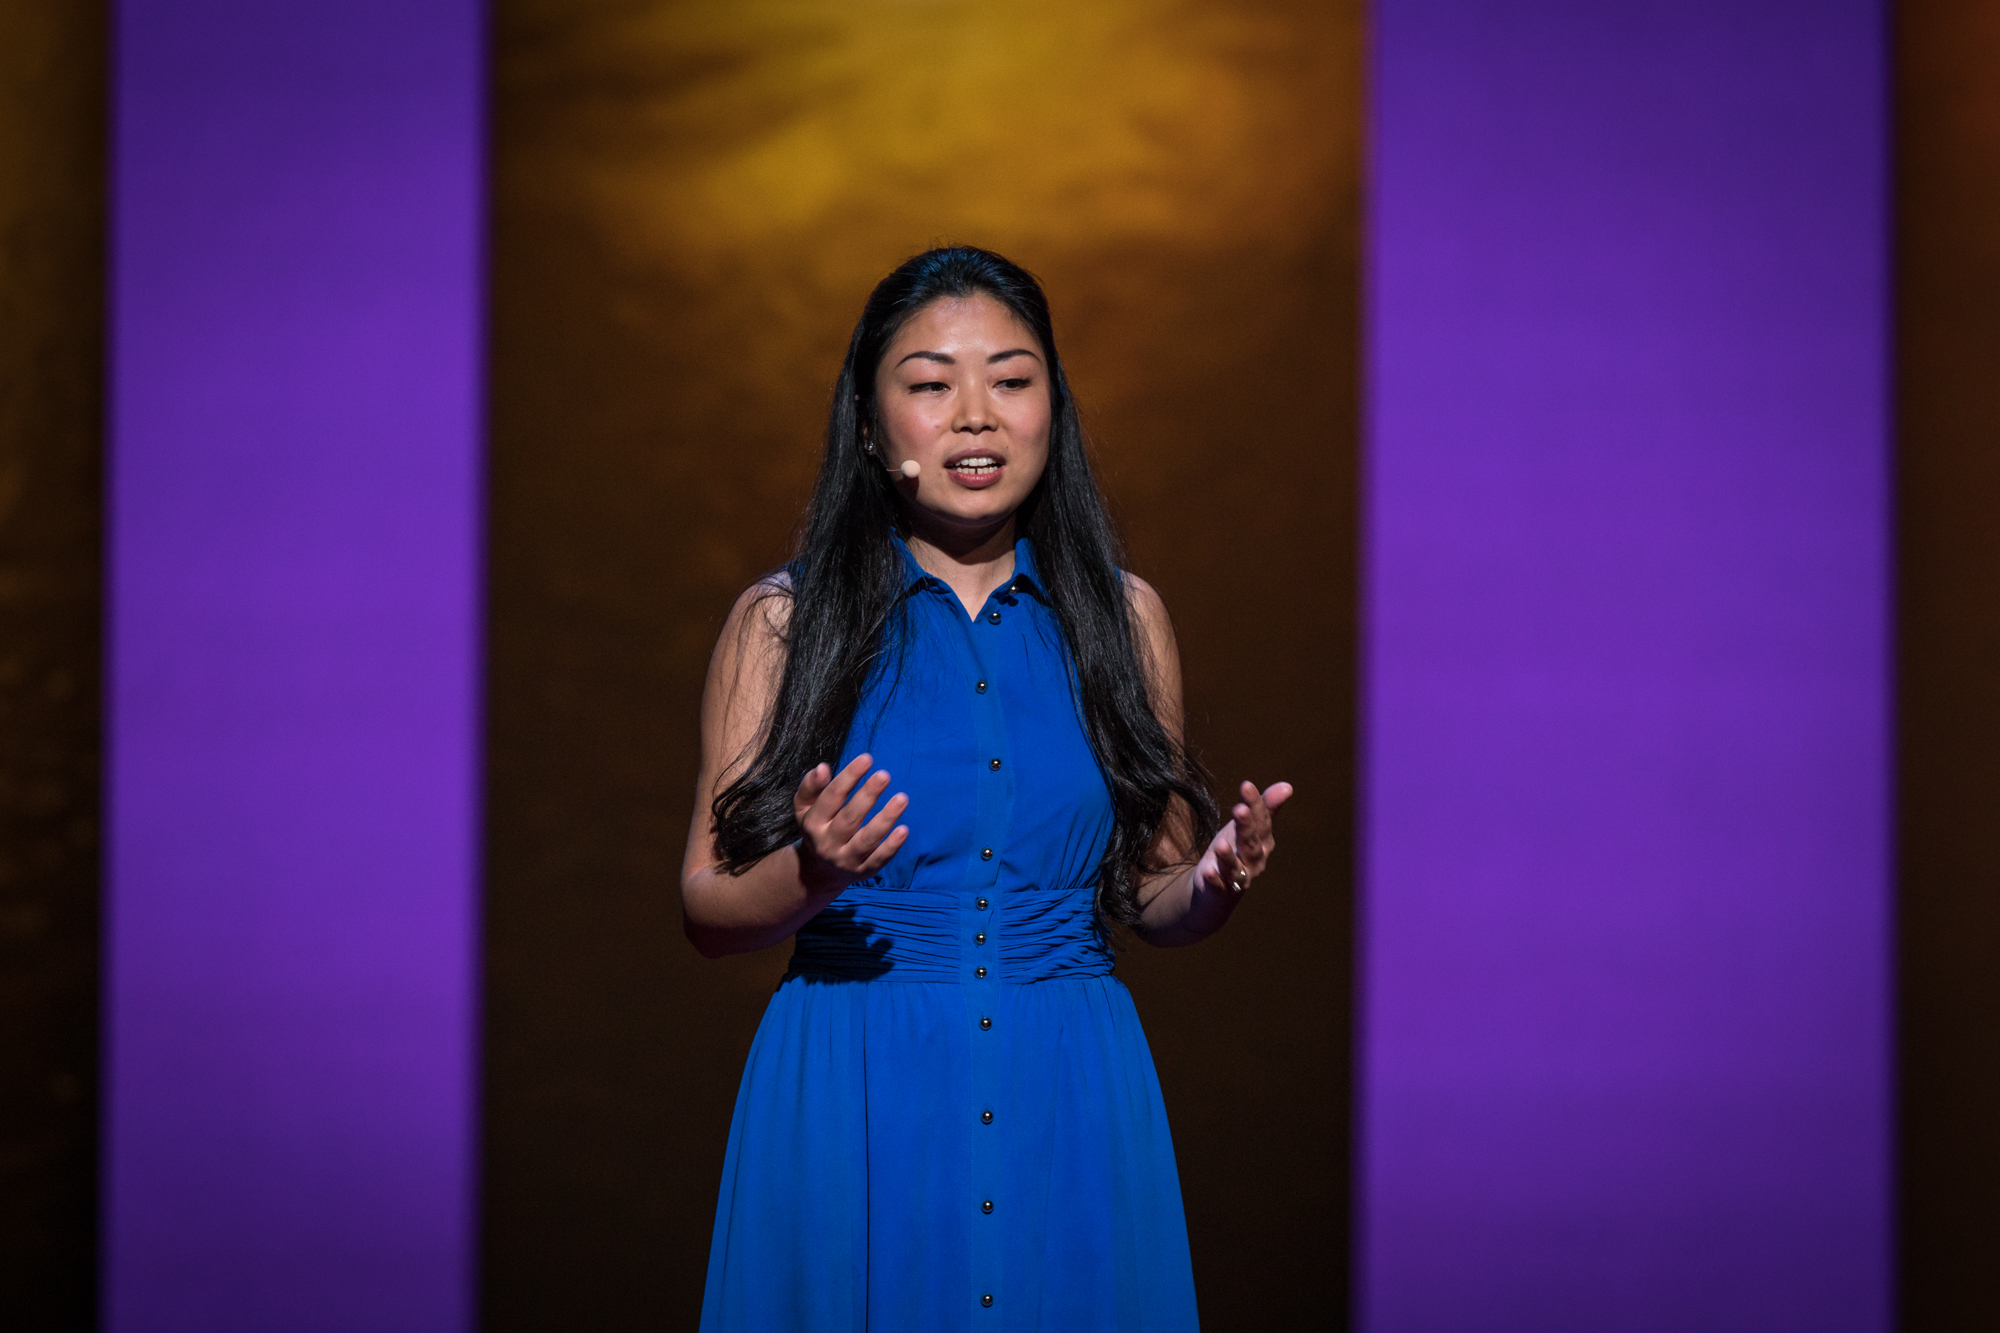 Nanfu Wang at TEDWomen 2016 - It's About Time, October 26-28, 2016, Yerba Buena Centre for the Arts, San Francisco, California. Photo: Marla Aufmuth / TED